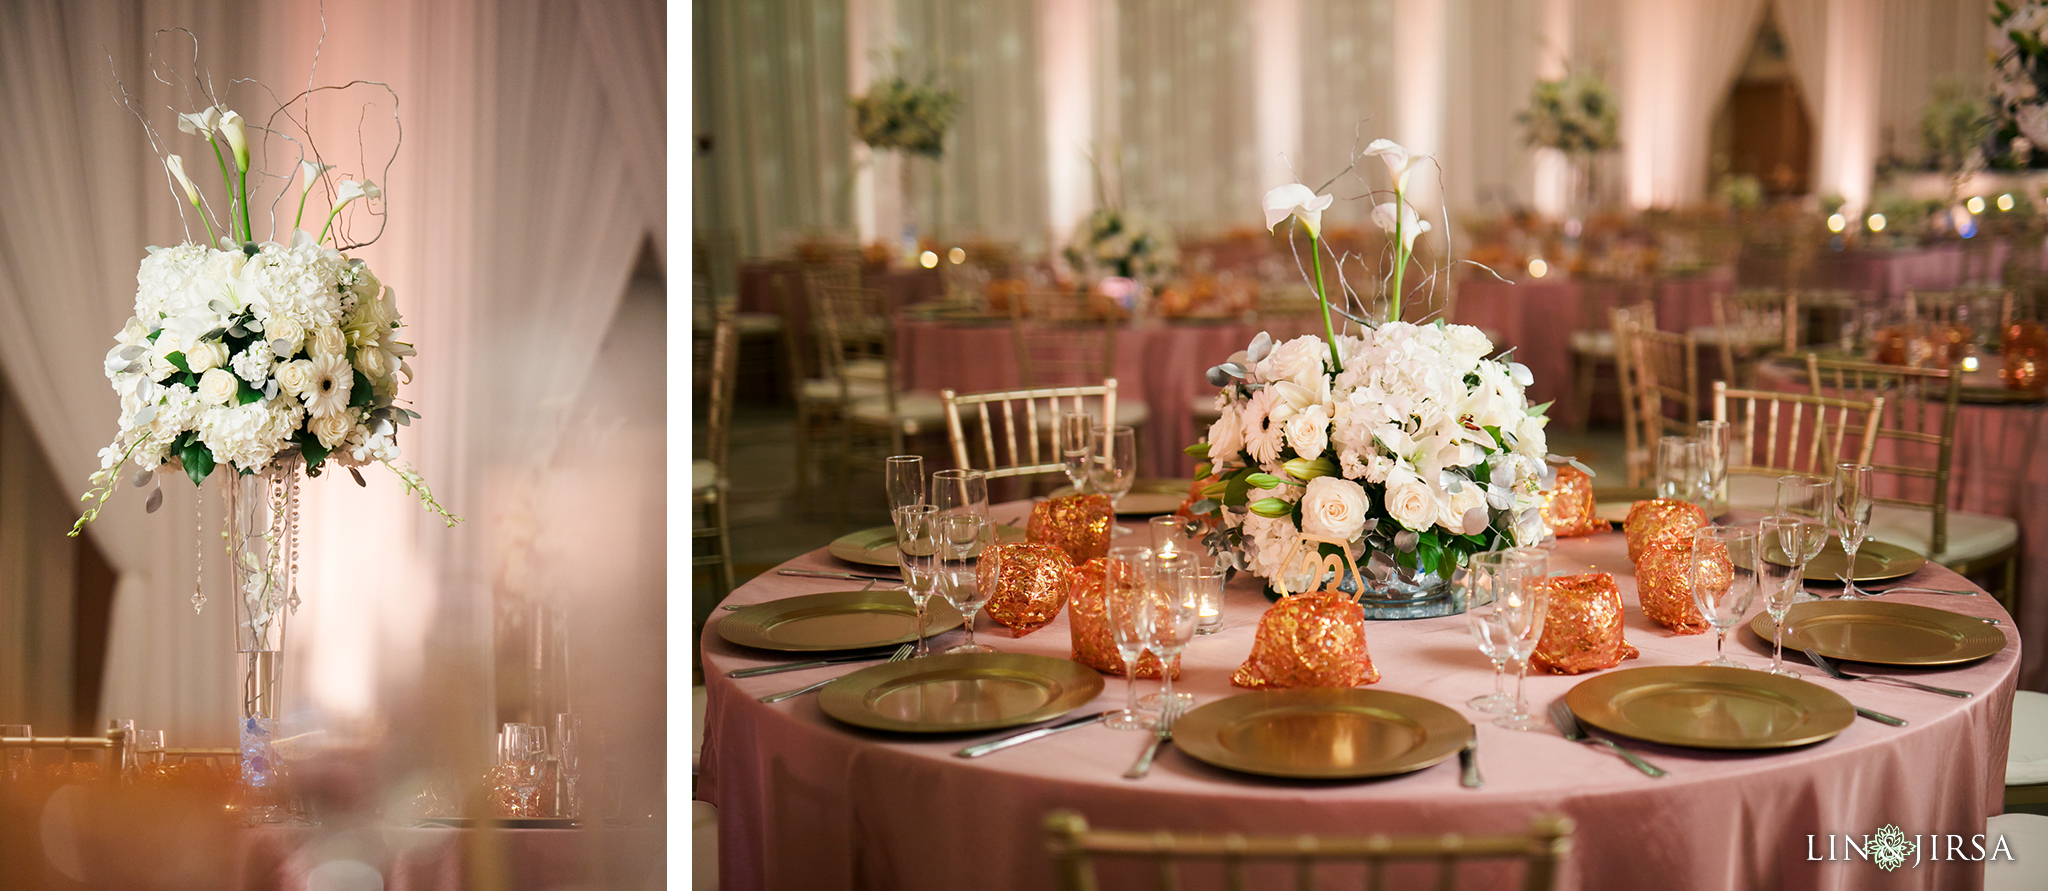 04 Hotel Irvine Joint Indian Reception Wedding Photography